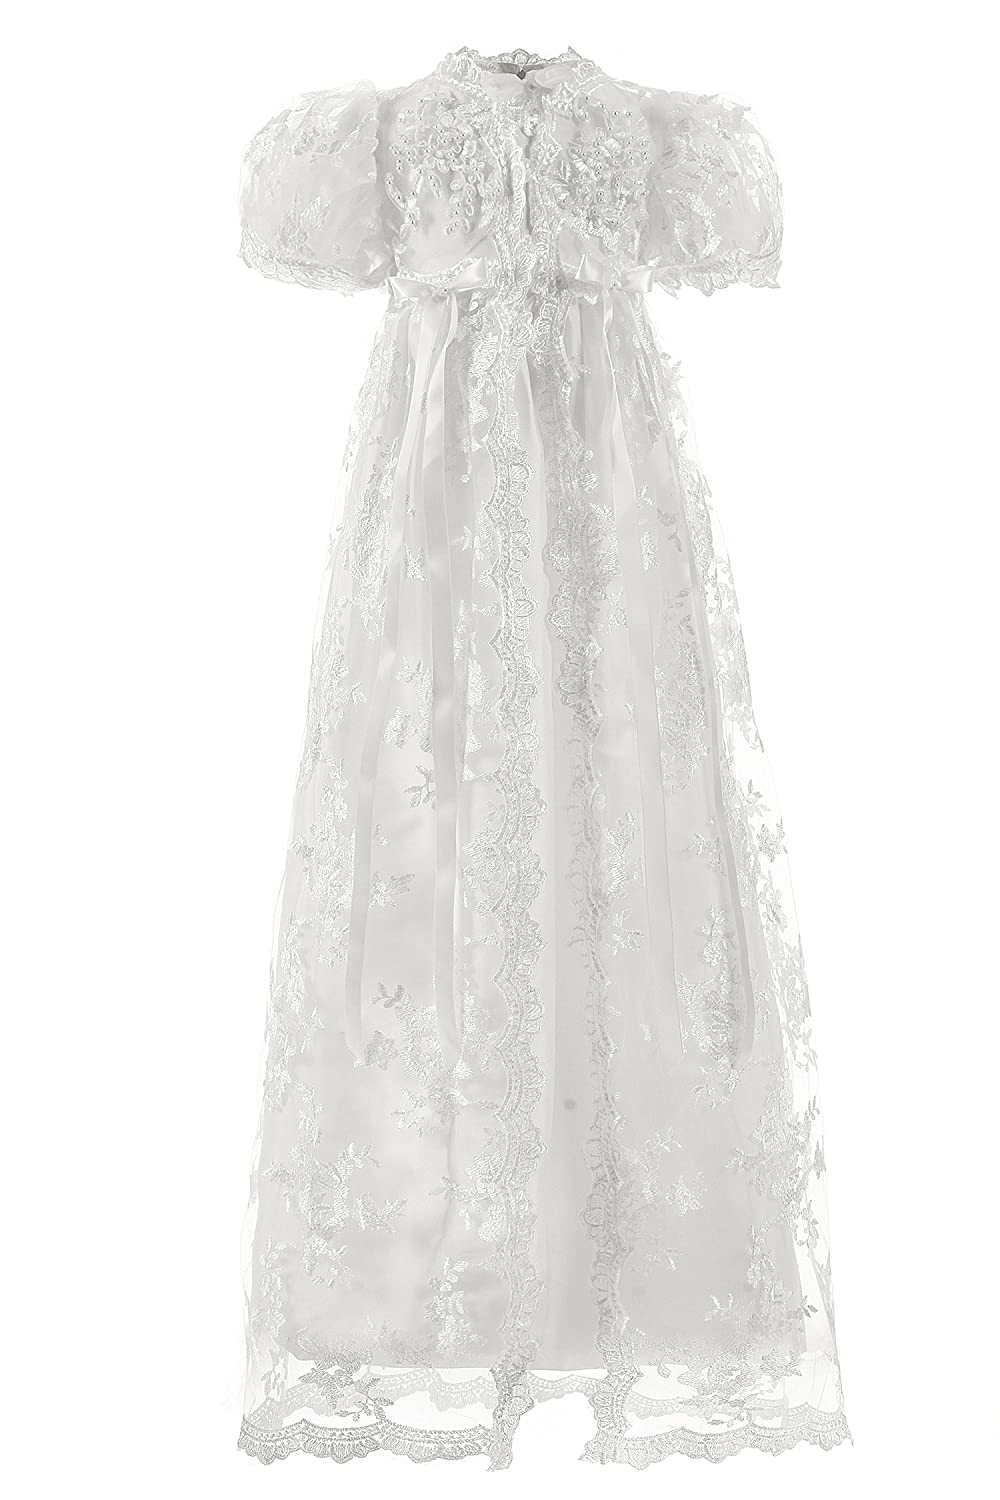 Pigpig Ivory Lace Baby Girl Christening Gowns Baby Baptism Dresses China